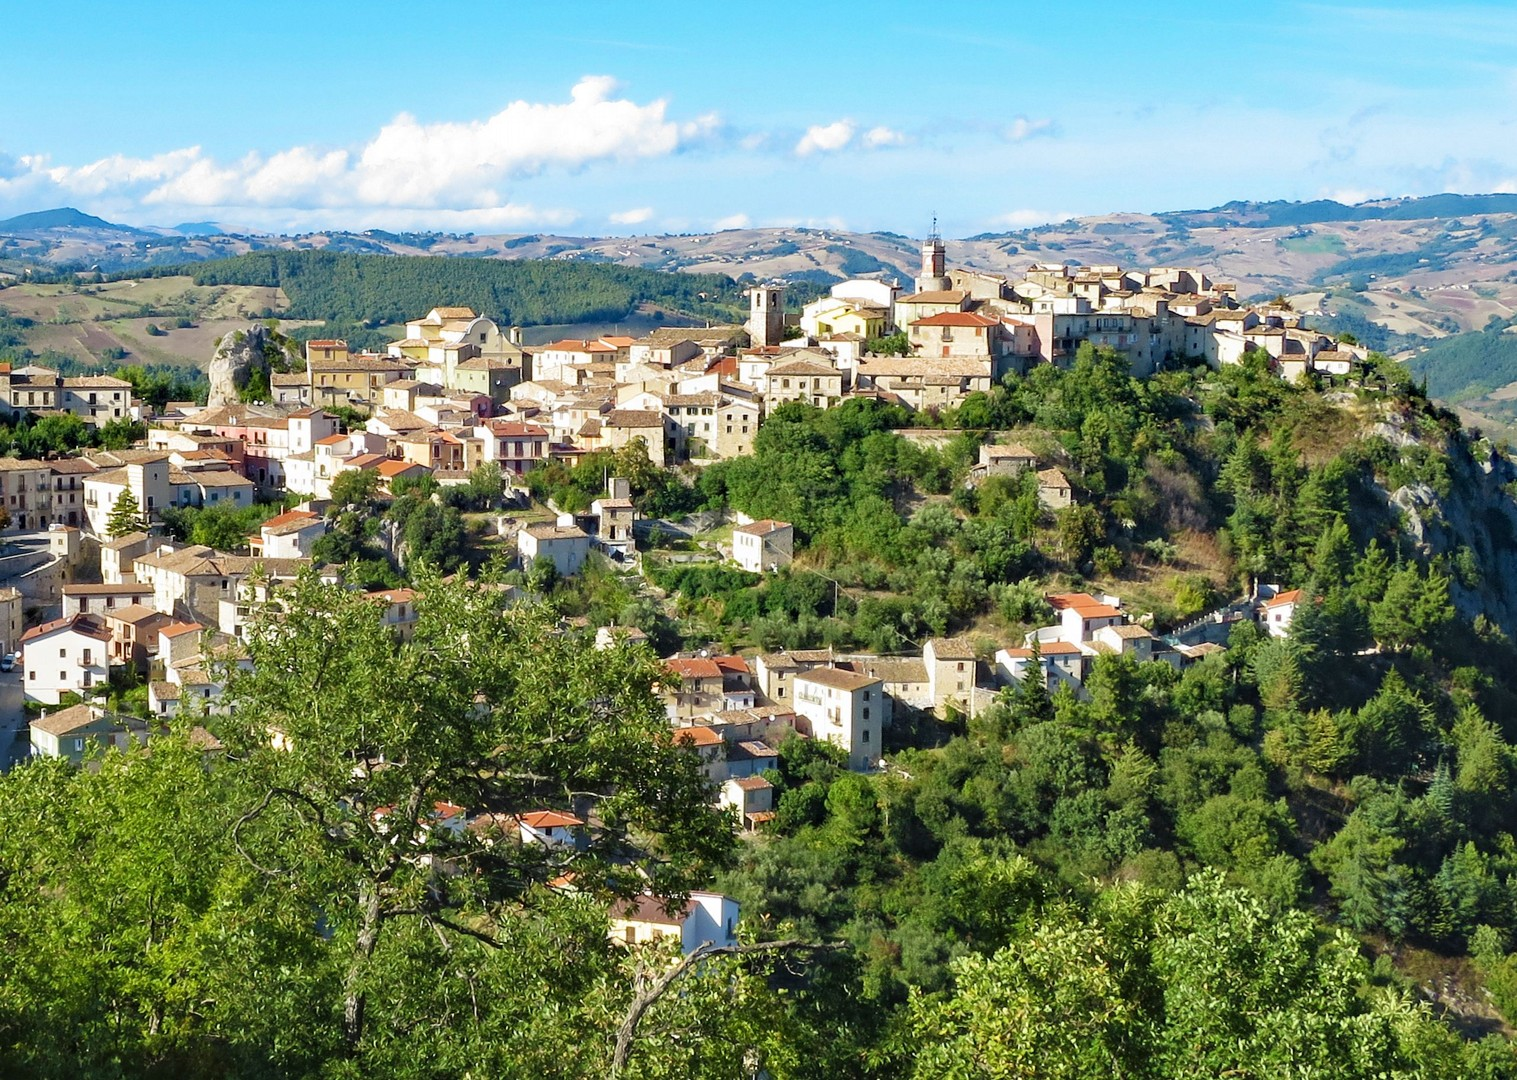 coffee-stop-village-south-to-north-cycling-holiday-italy.jpg - Italy - Grand Traverse - South to North (22 days) - Guided Road Cycling Holiday - Road Cycling